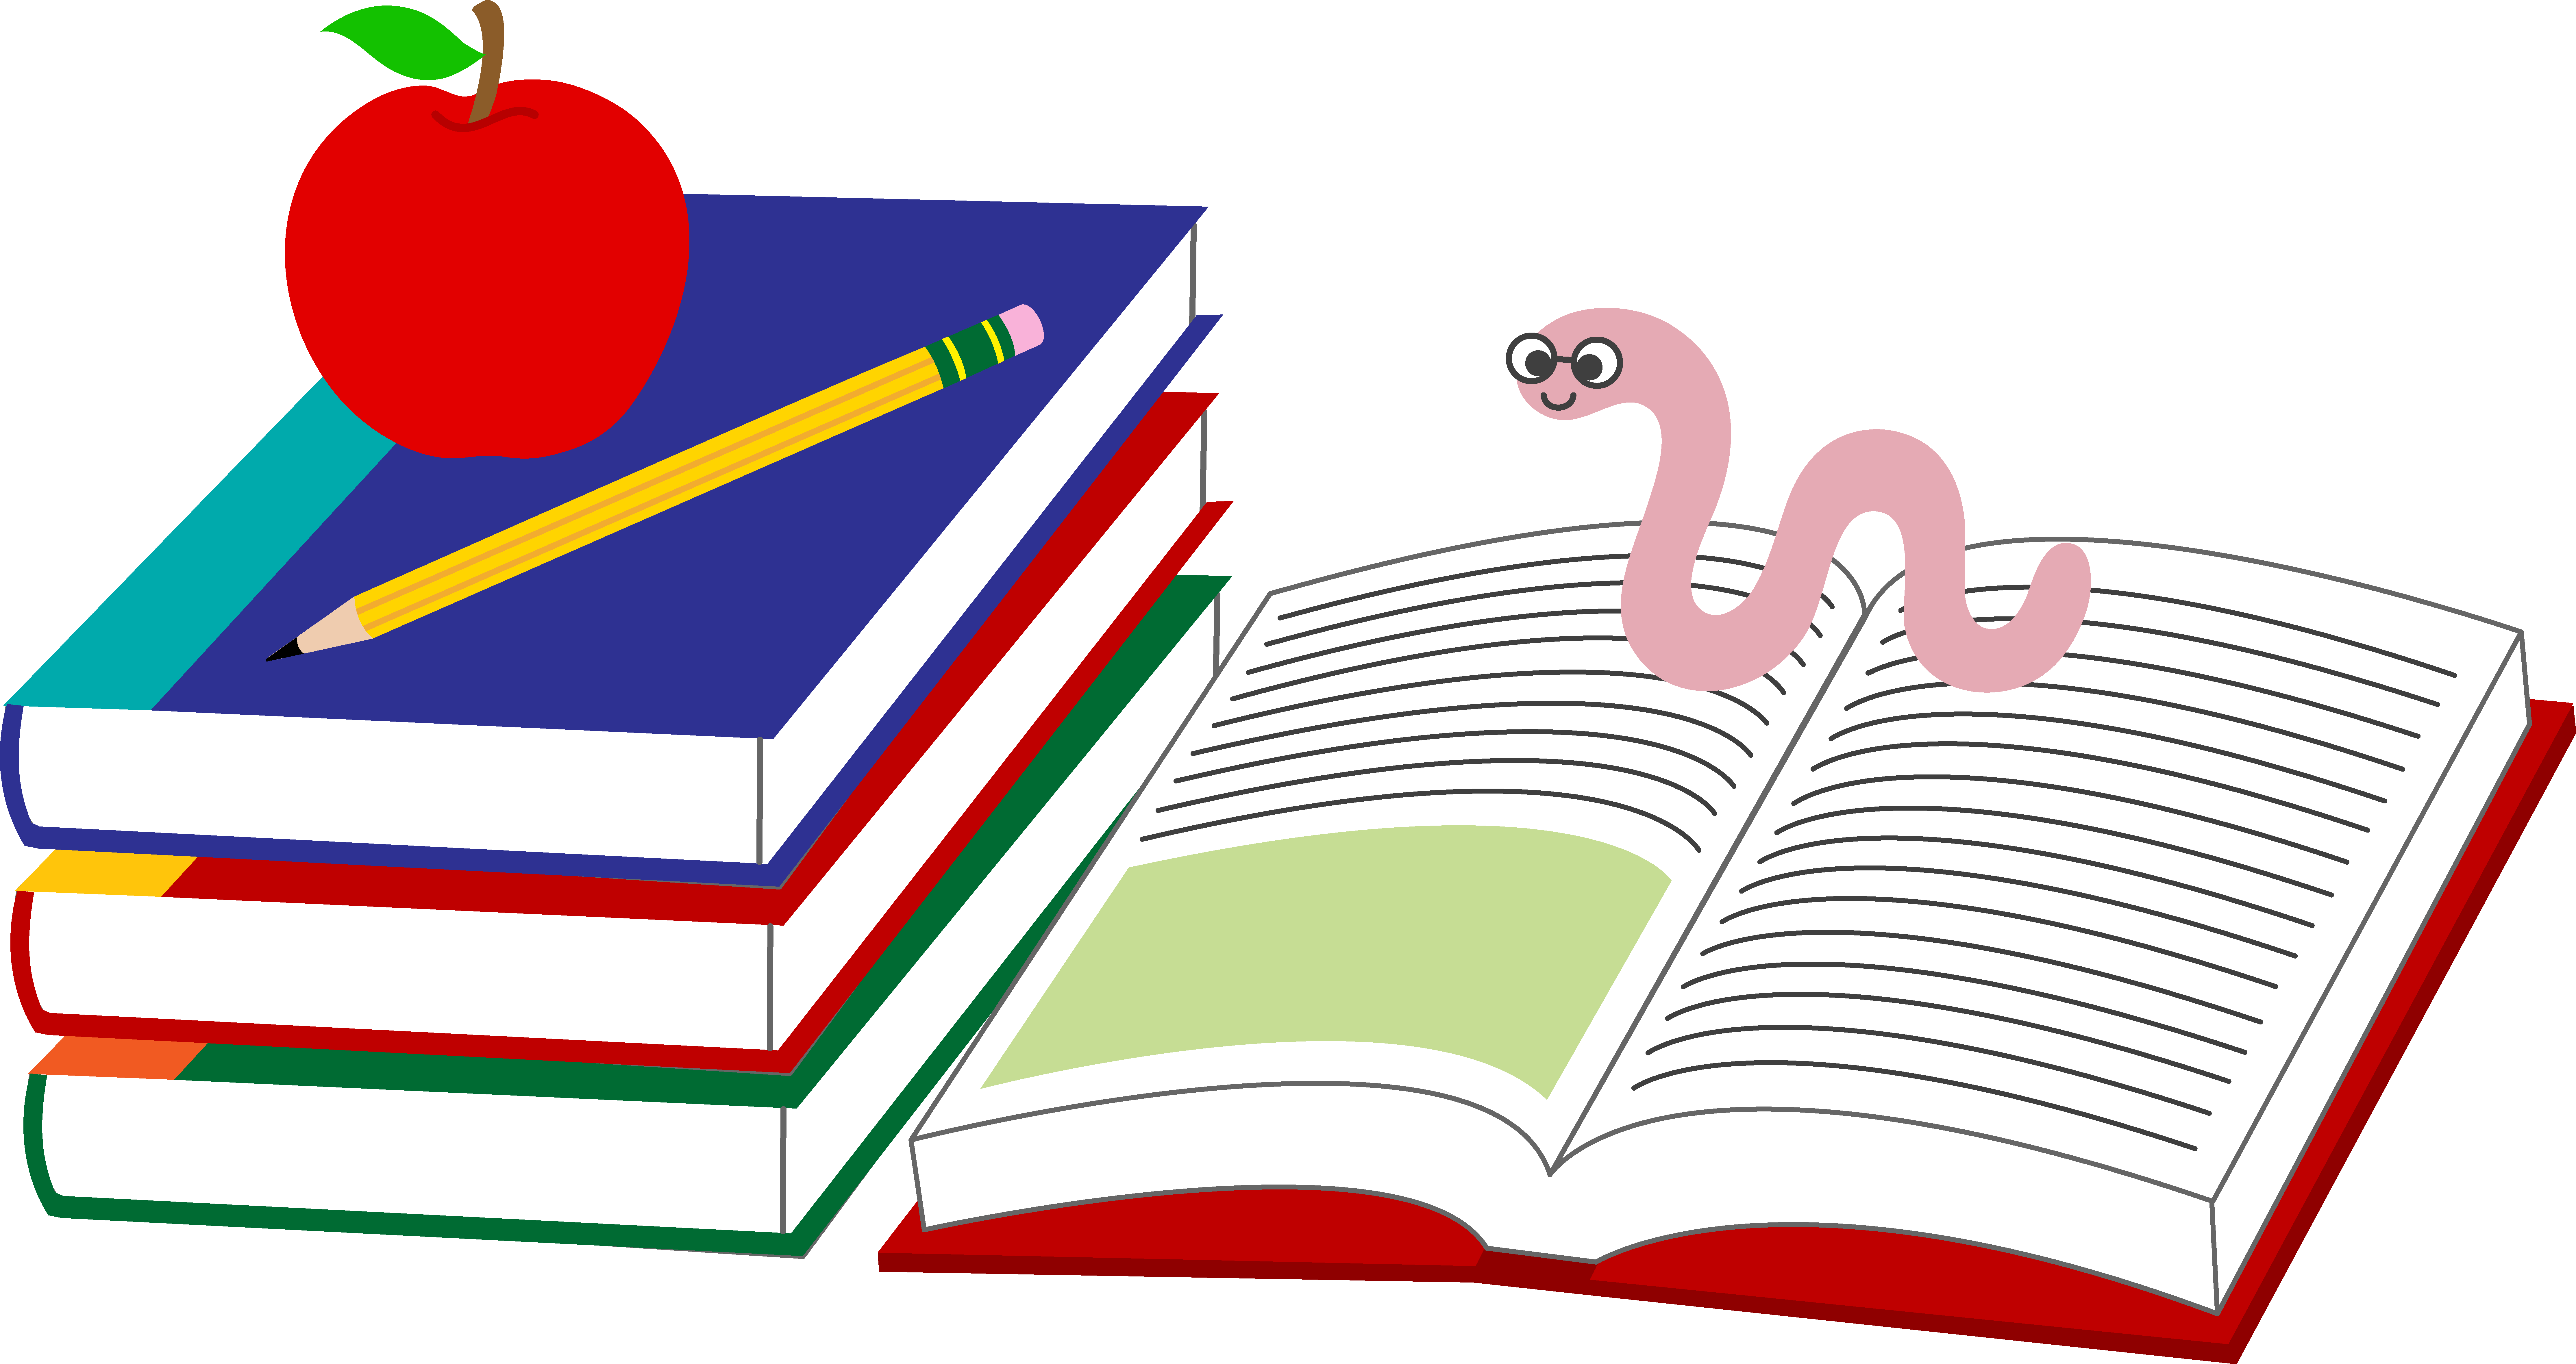 Worm clipart business. School books and book